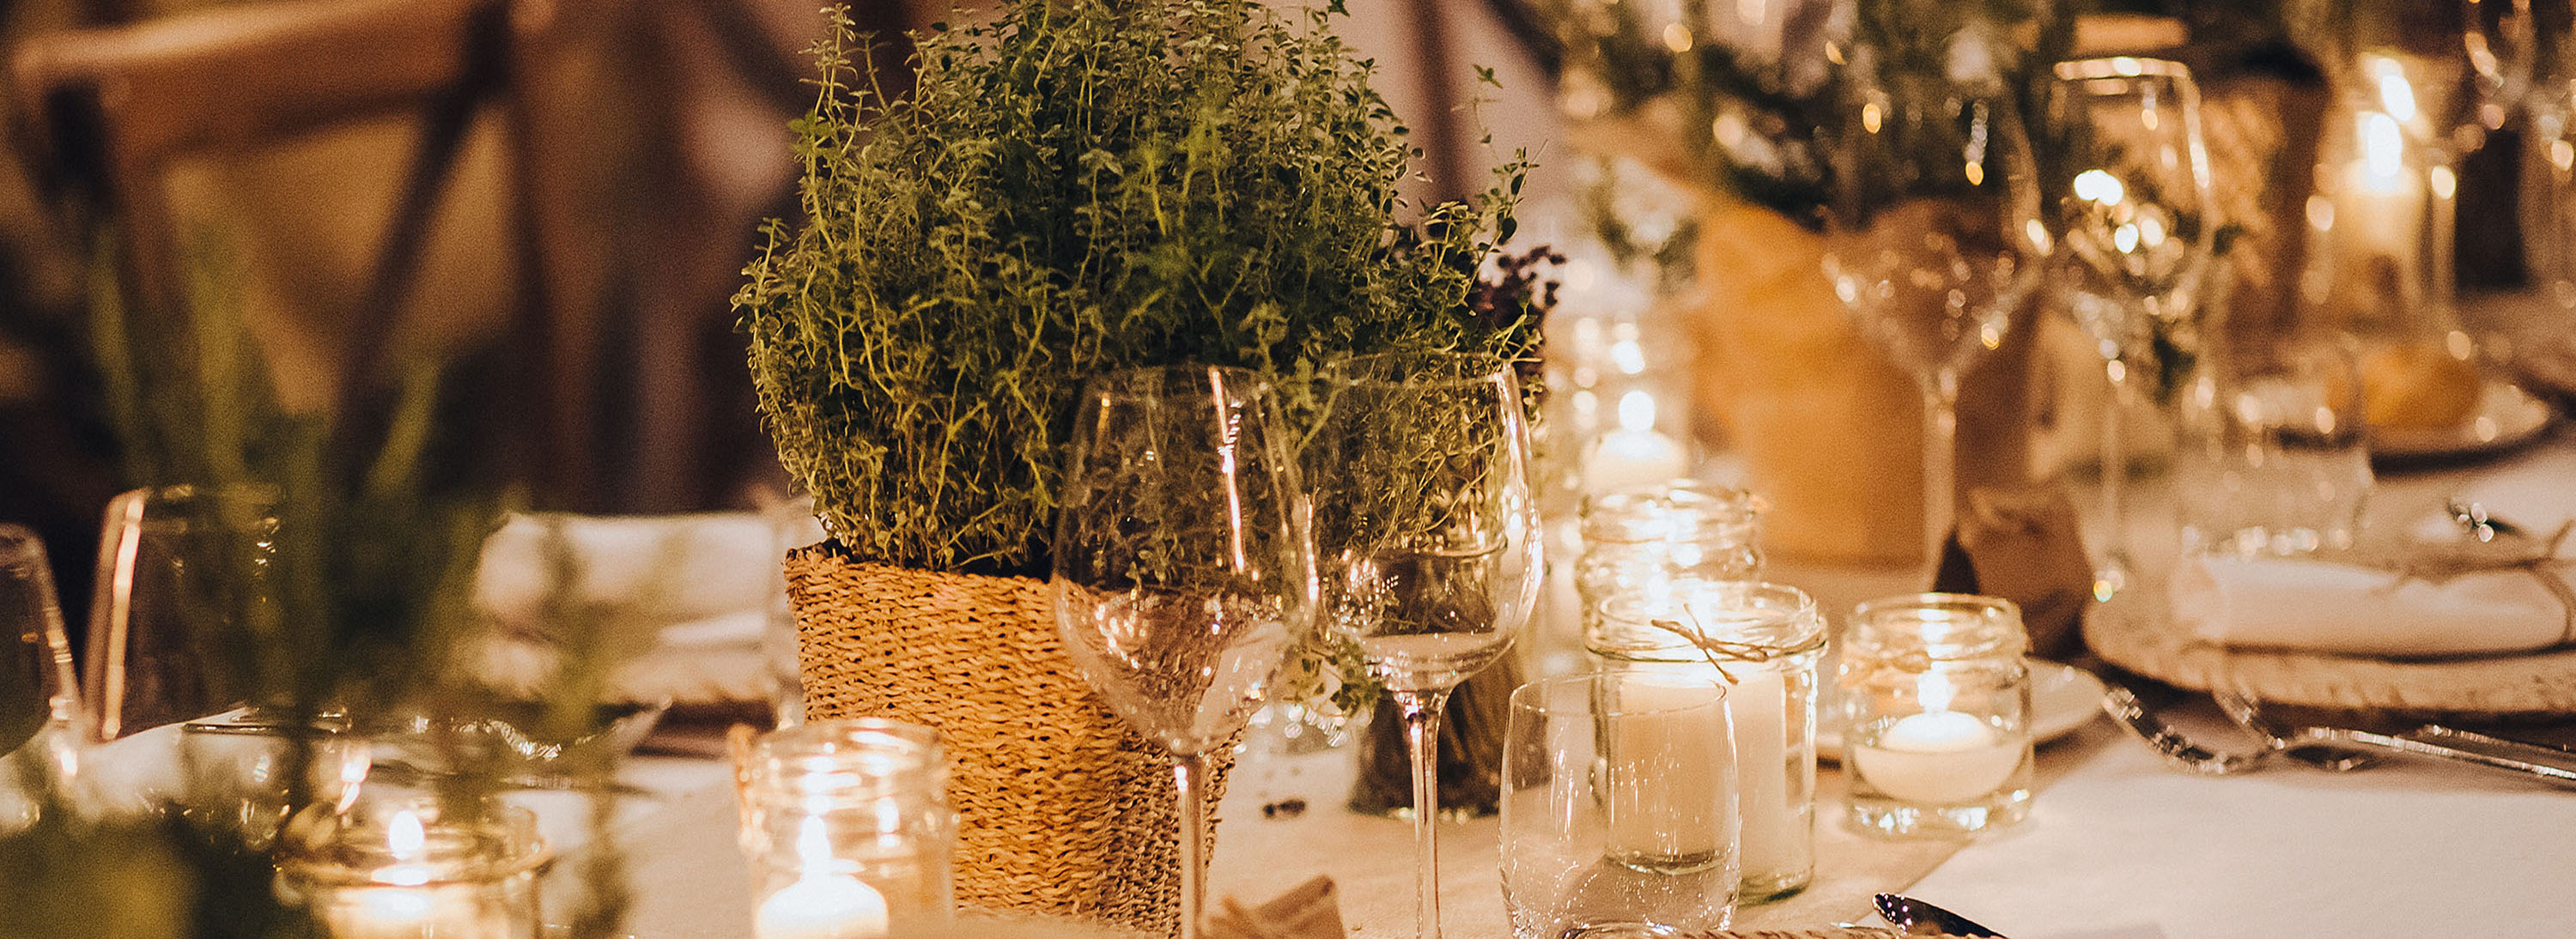 Celebrate a Special Event with Us